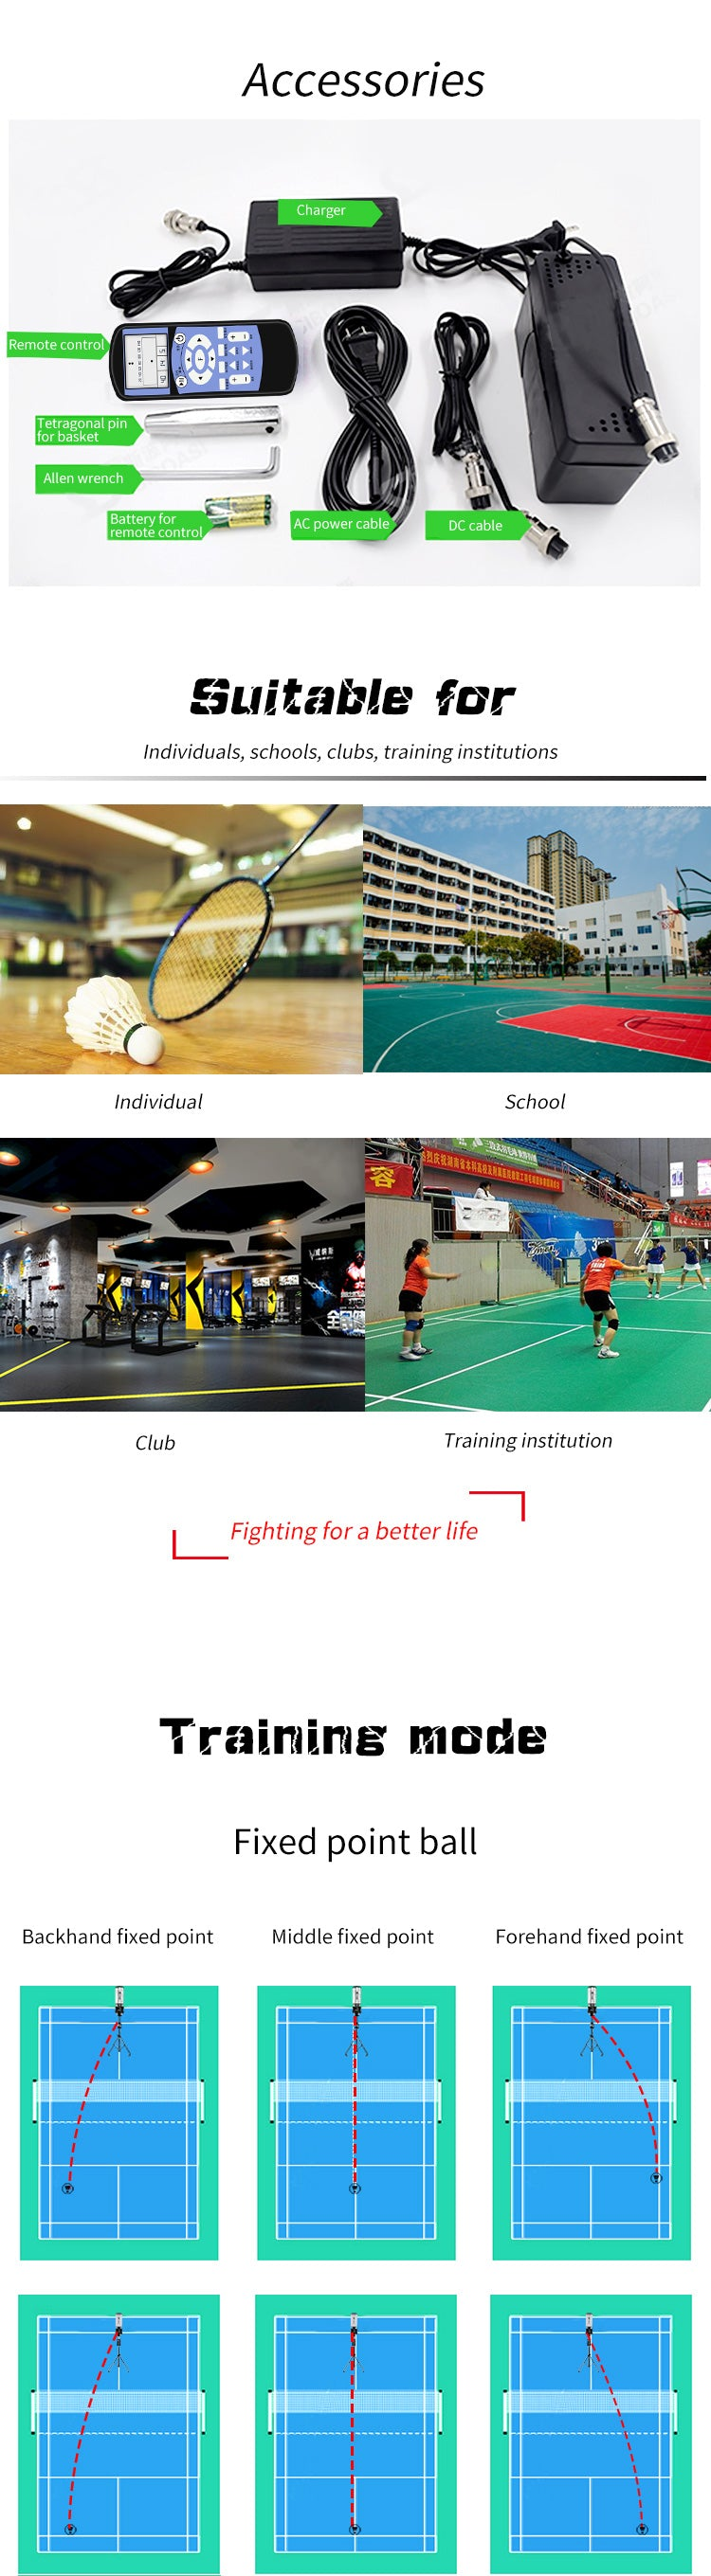 Badminton Training Machine - Accessories & Training Mode